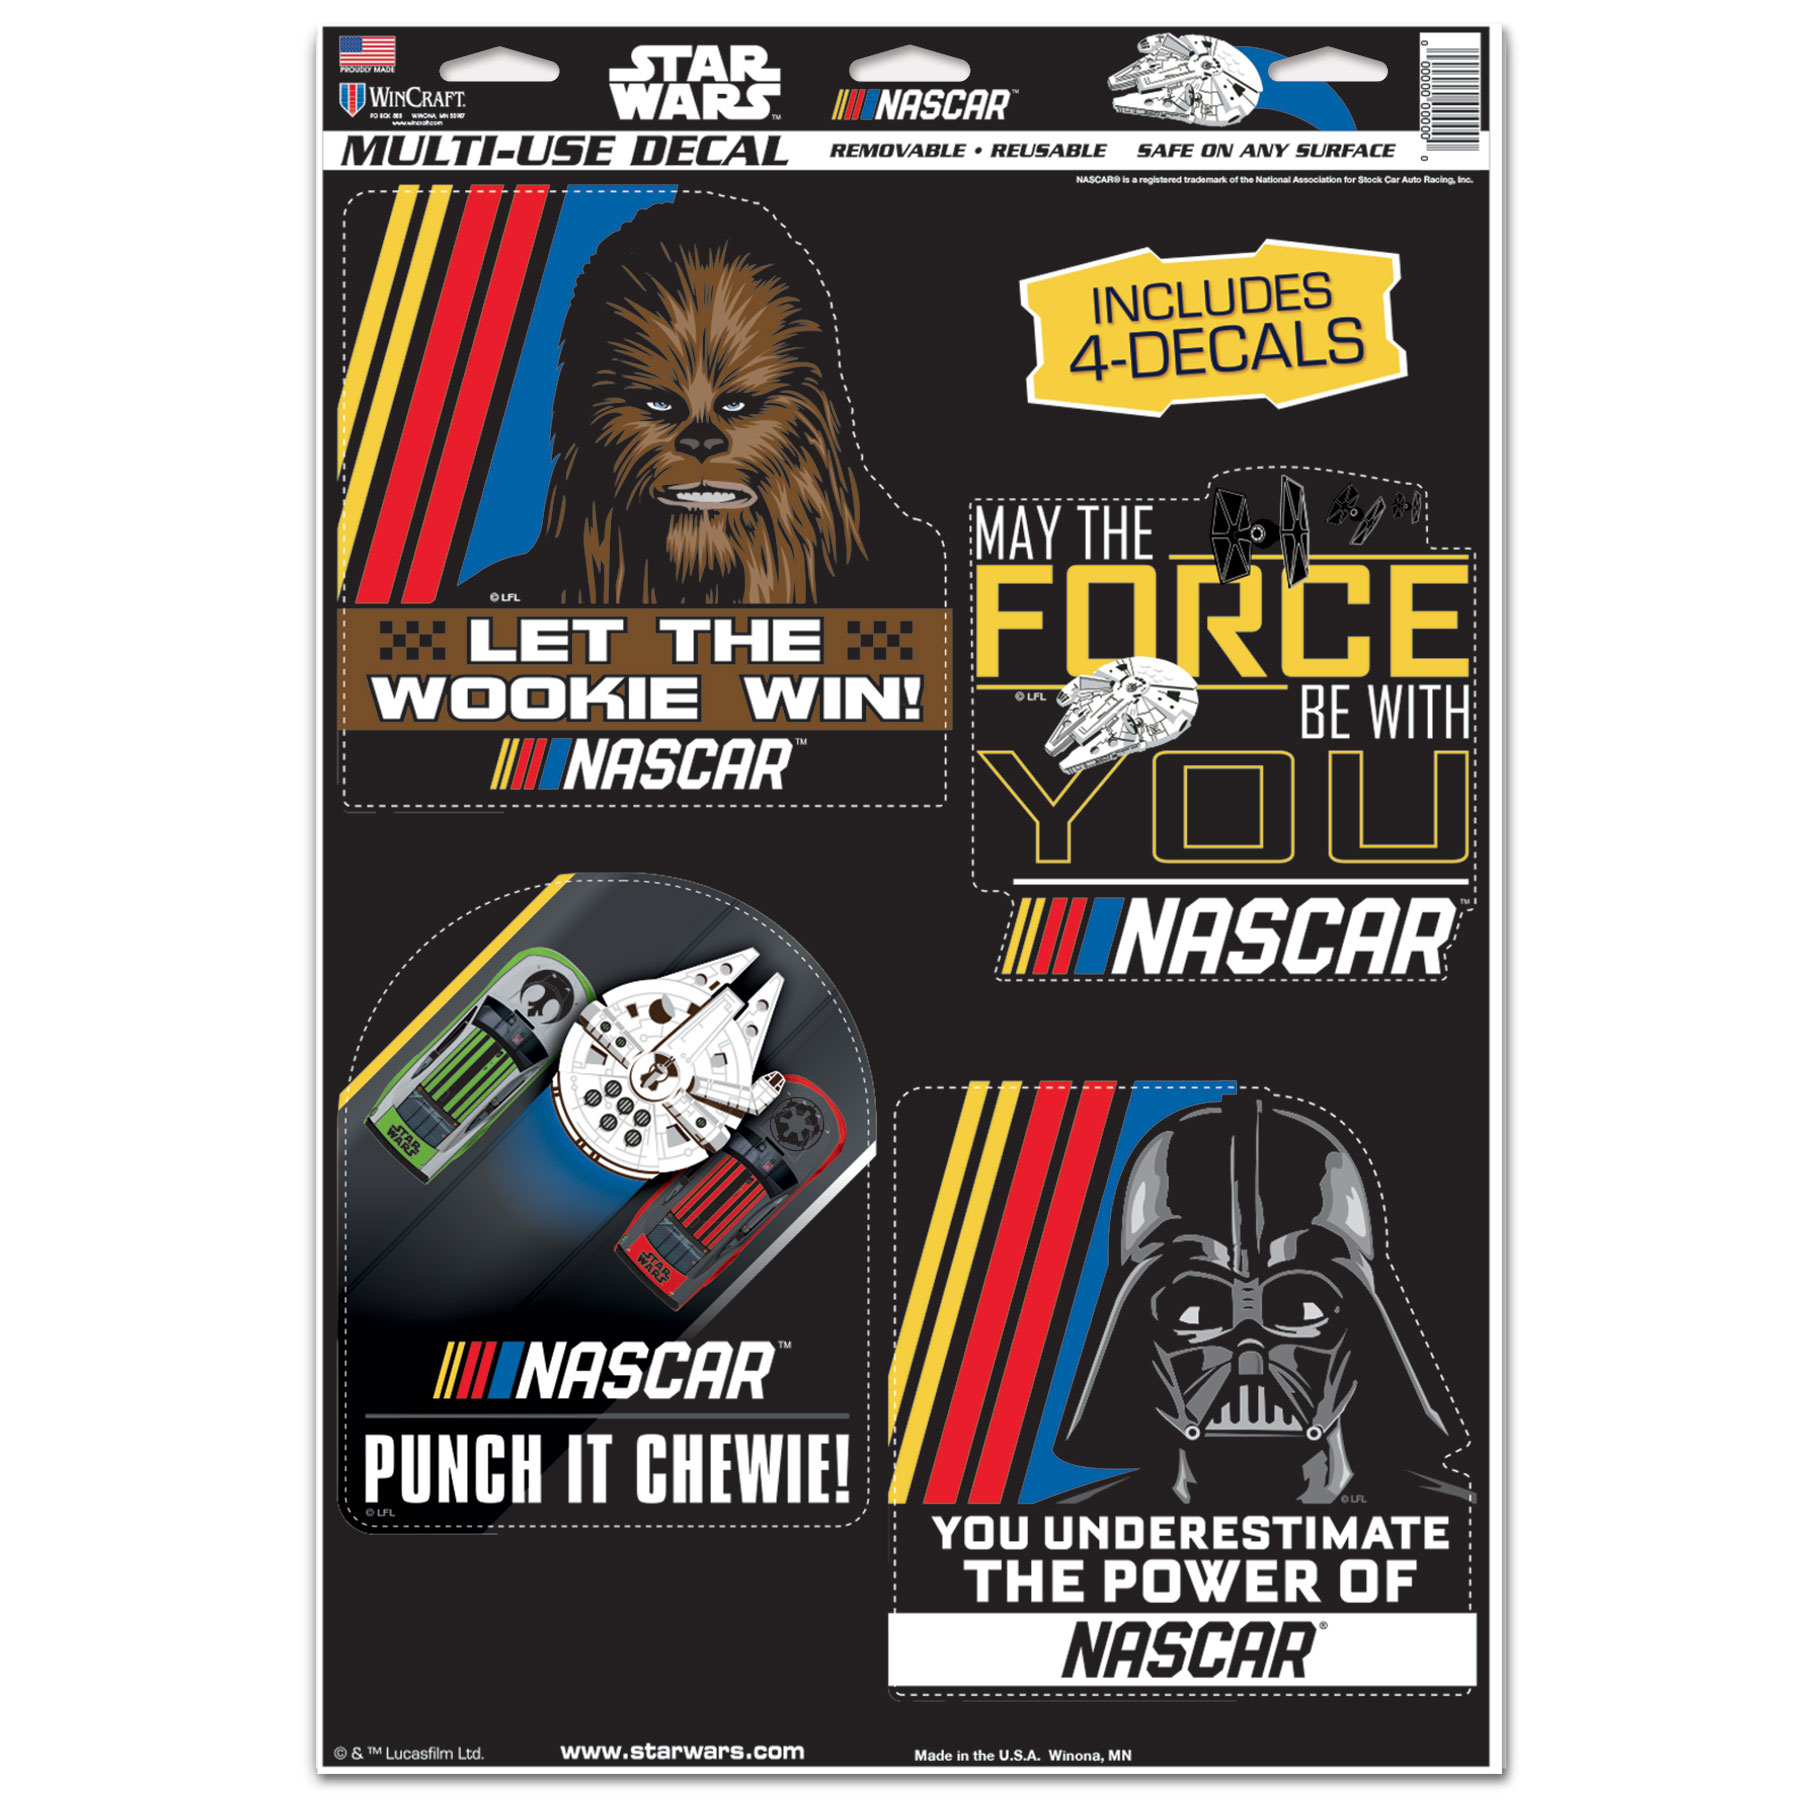 "NASCAR WinCraft 11"" x 17"" Multi-Use Decal - No Size"